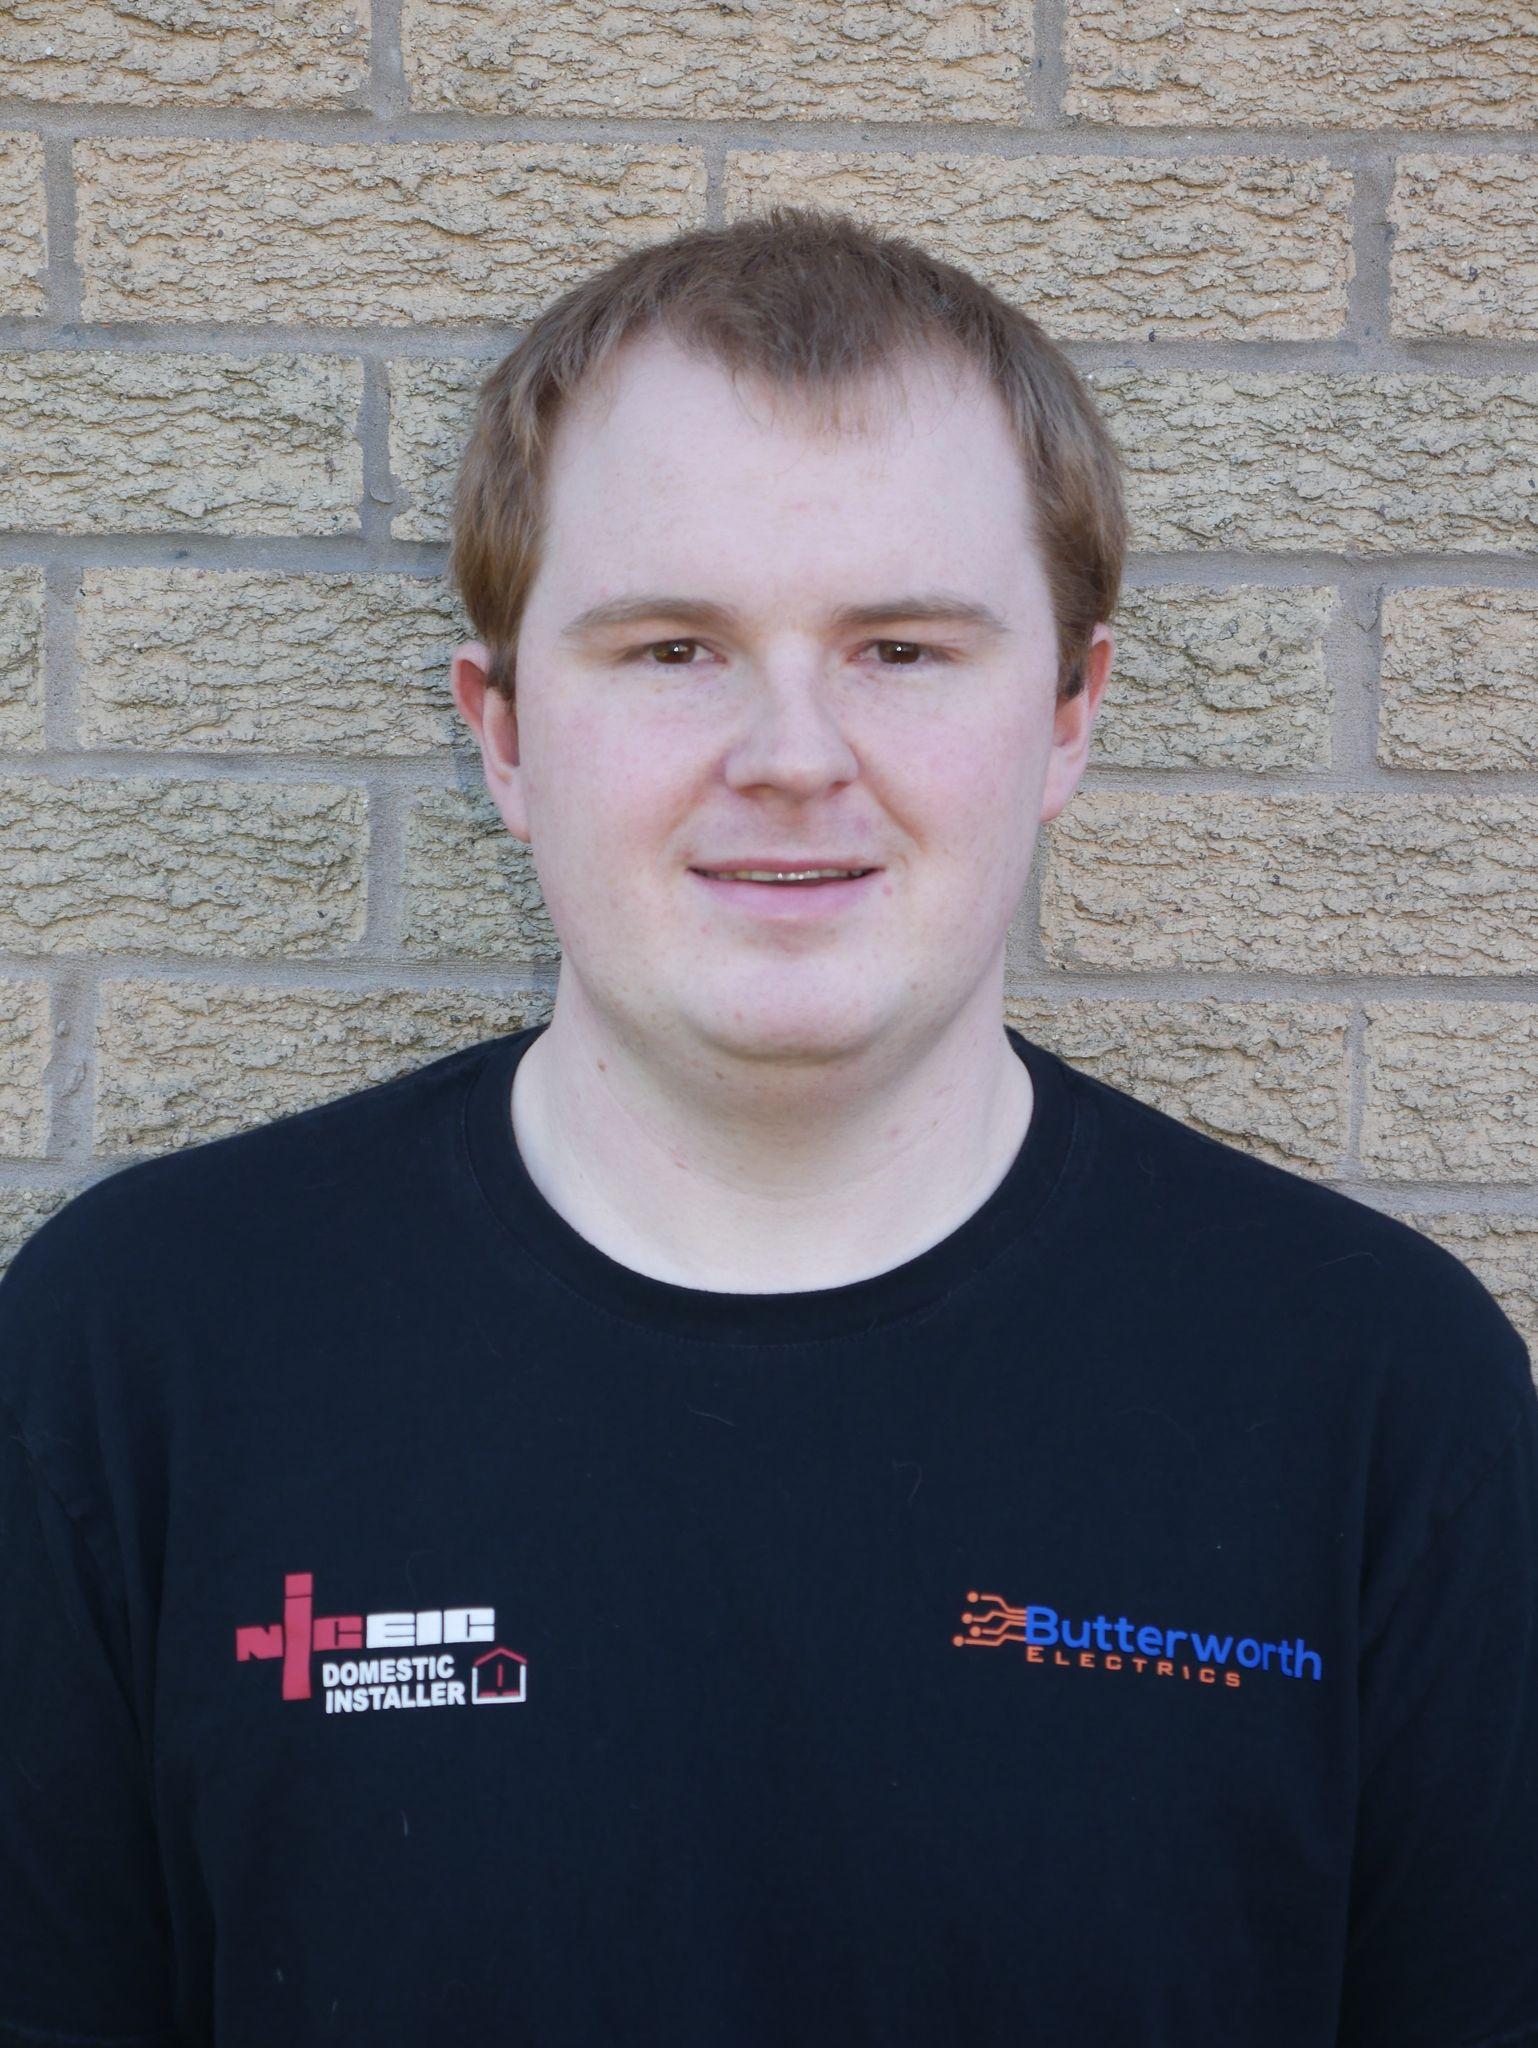 Mark Butterworth - Electrician in Wigan & Leigh